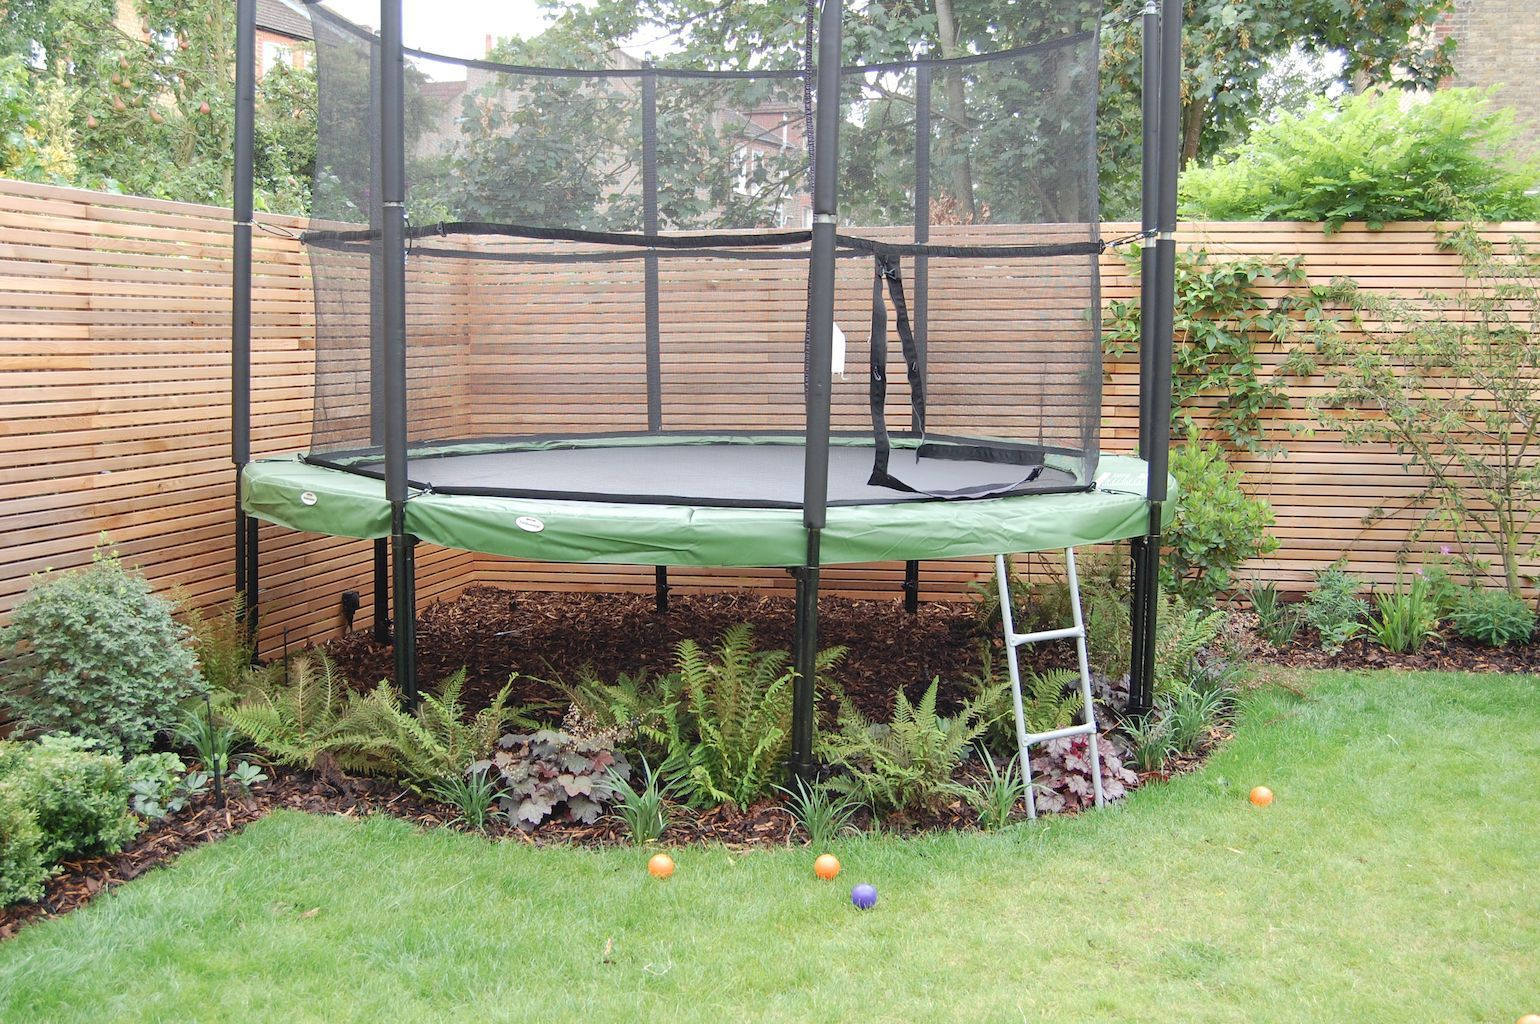 Charmant Underplanted Trampoline As Alternative To Digging A Pit (Guy Will Be  Pleased!